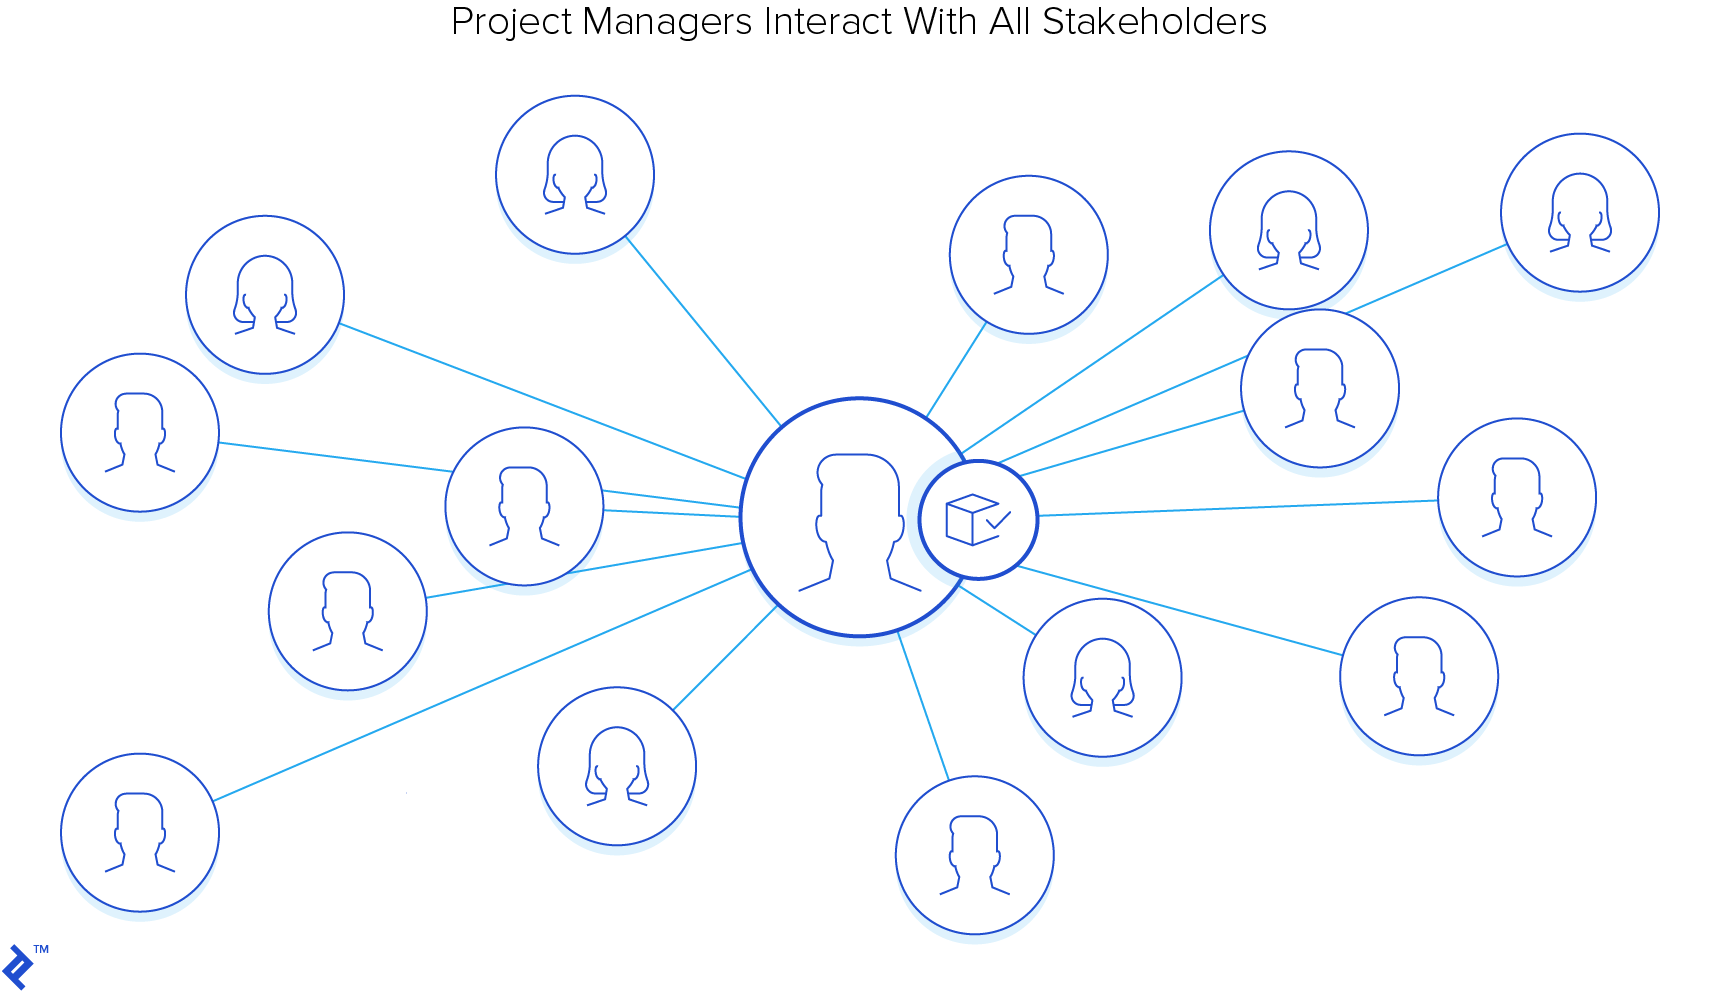 Project managers interact with all stakeholders.